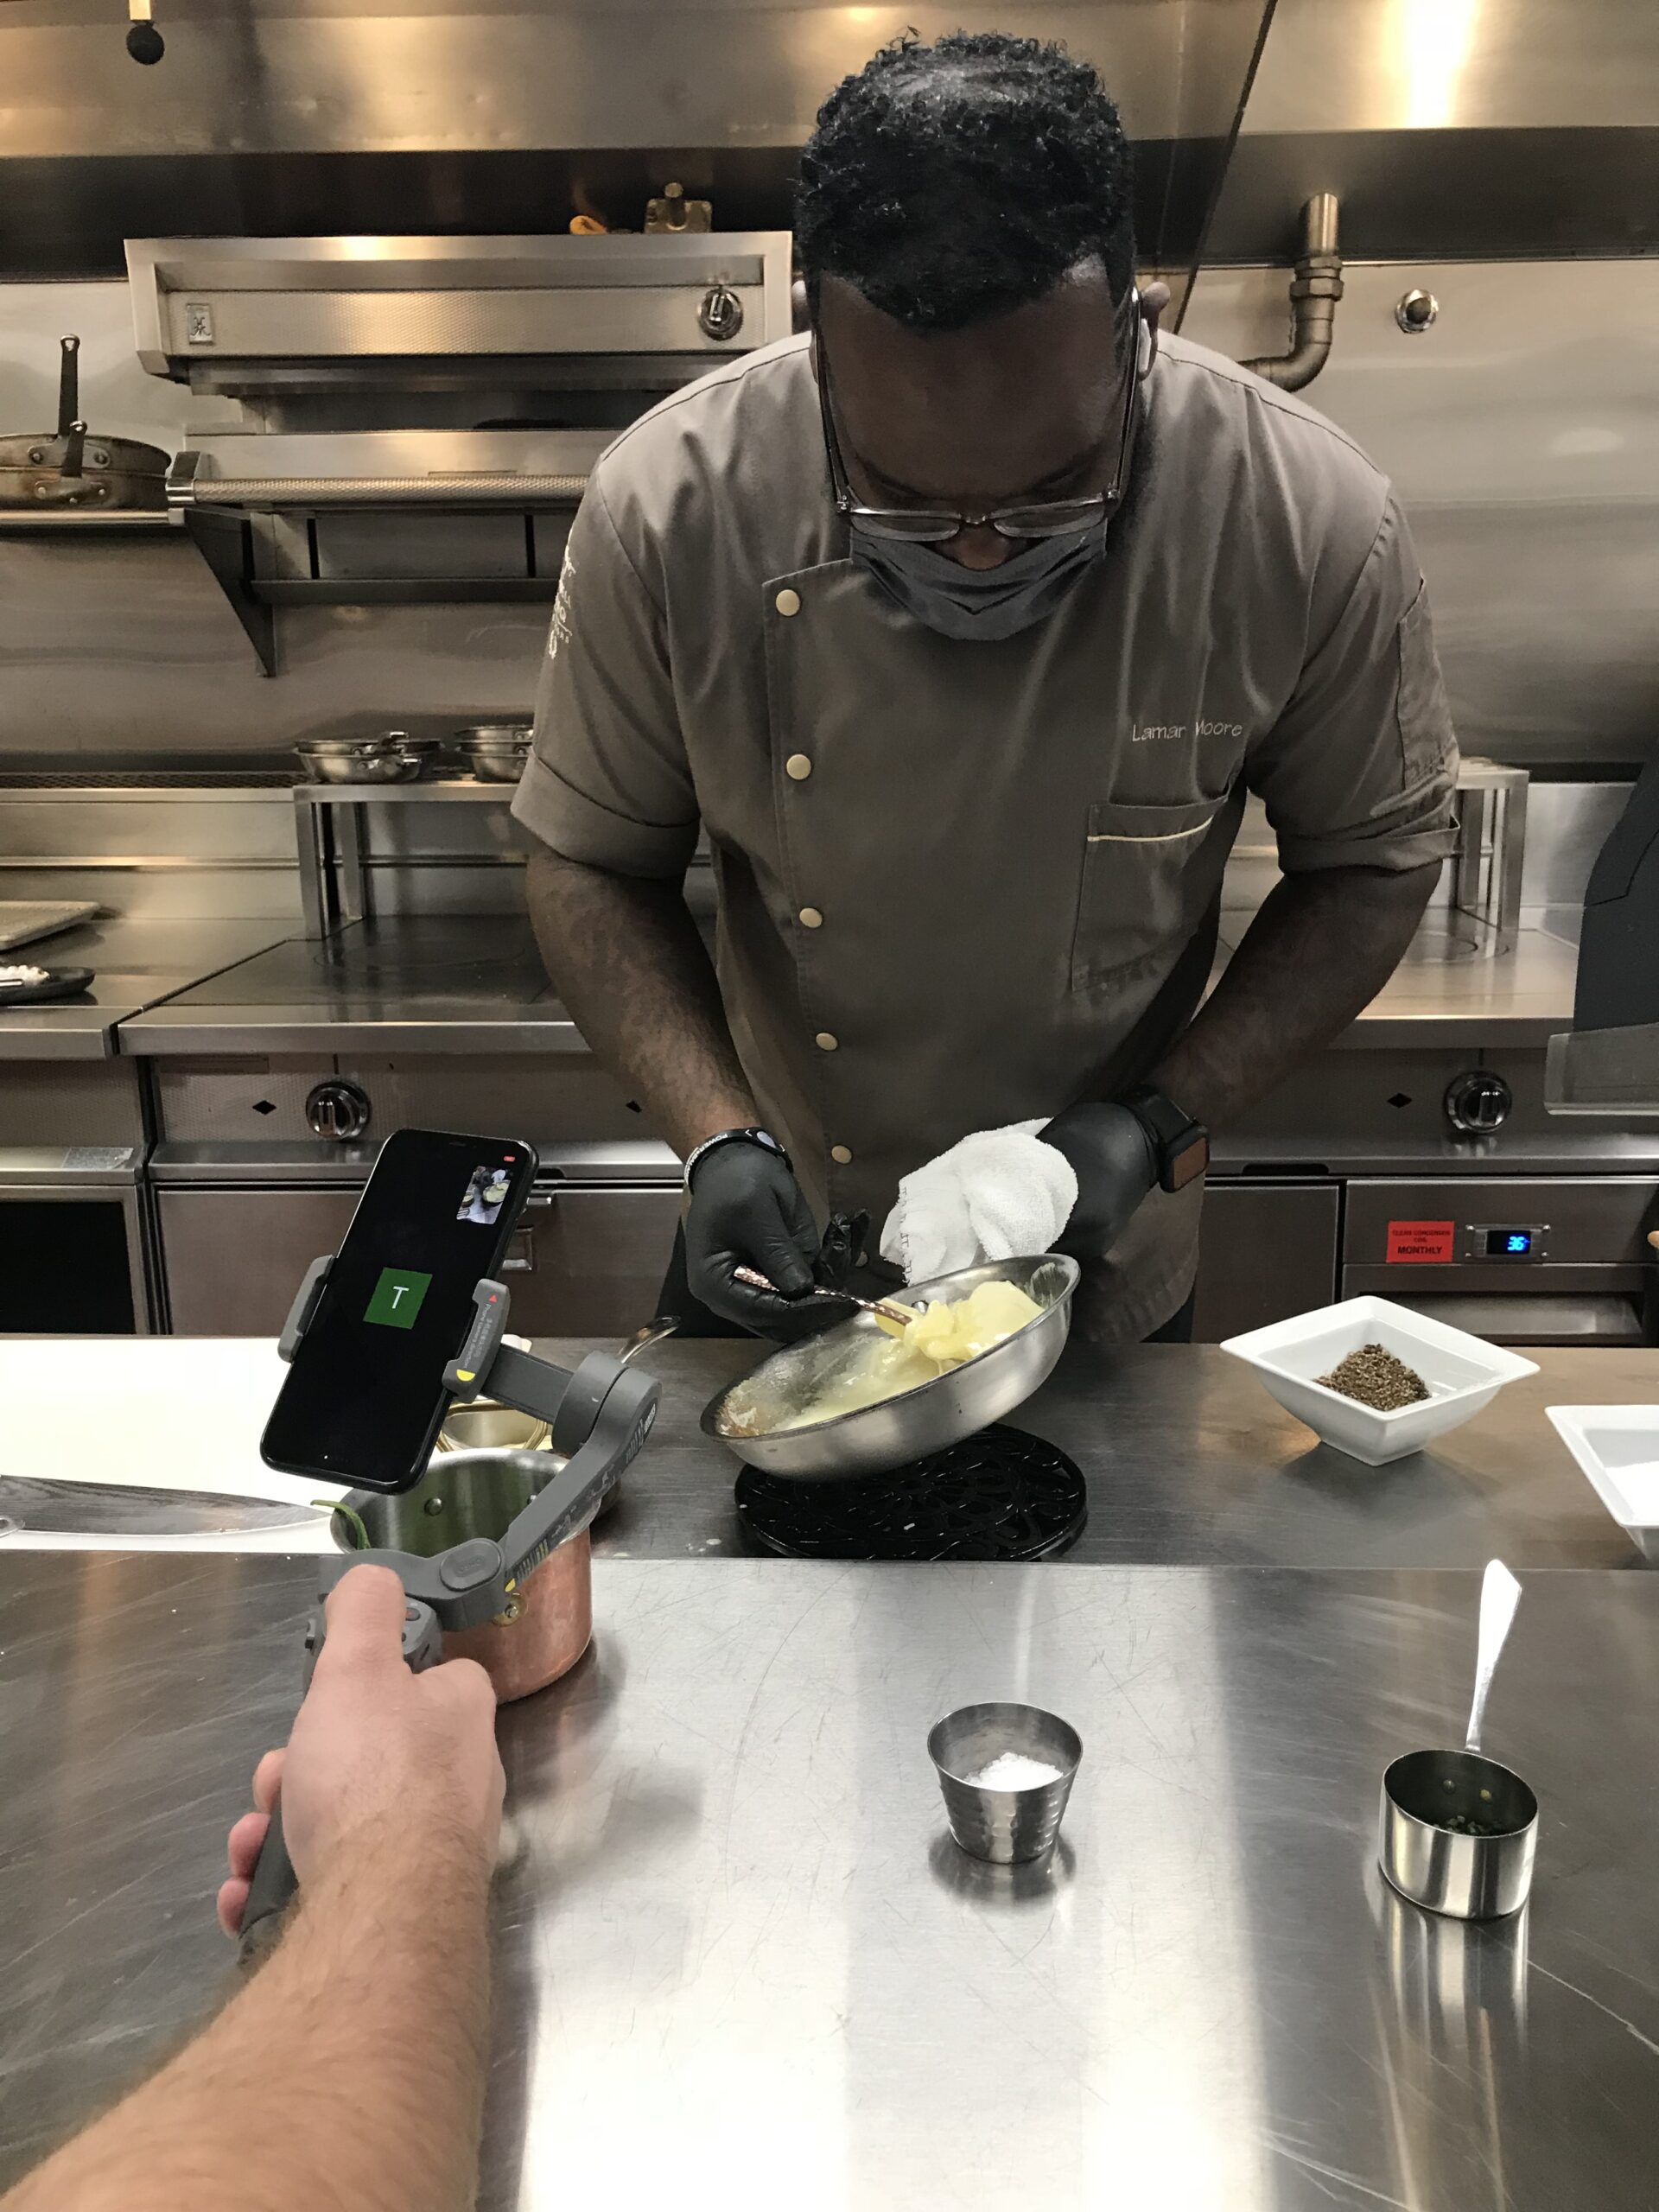 Our Zoom Call With Chef Lamar Moore